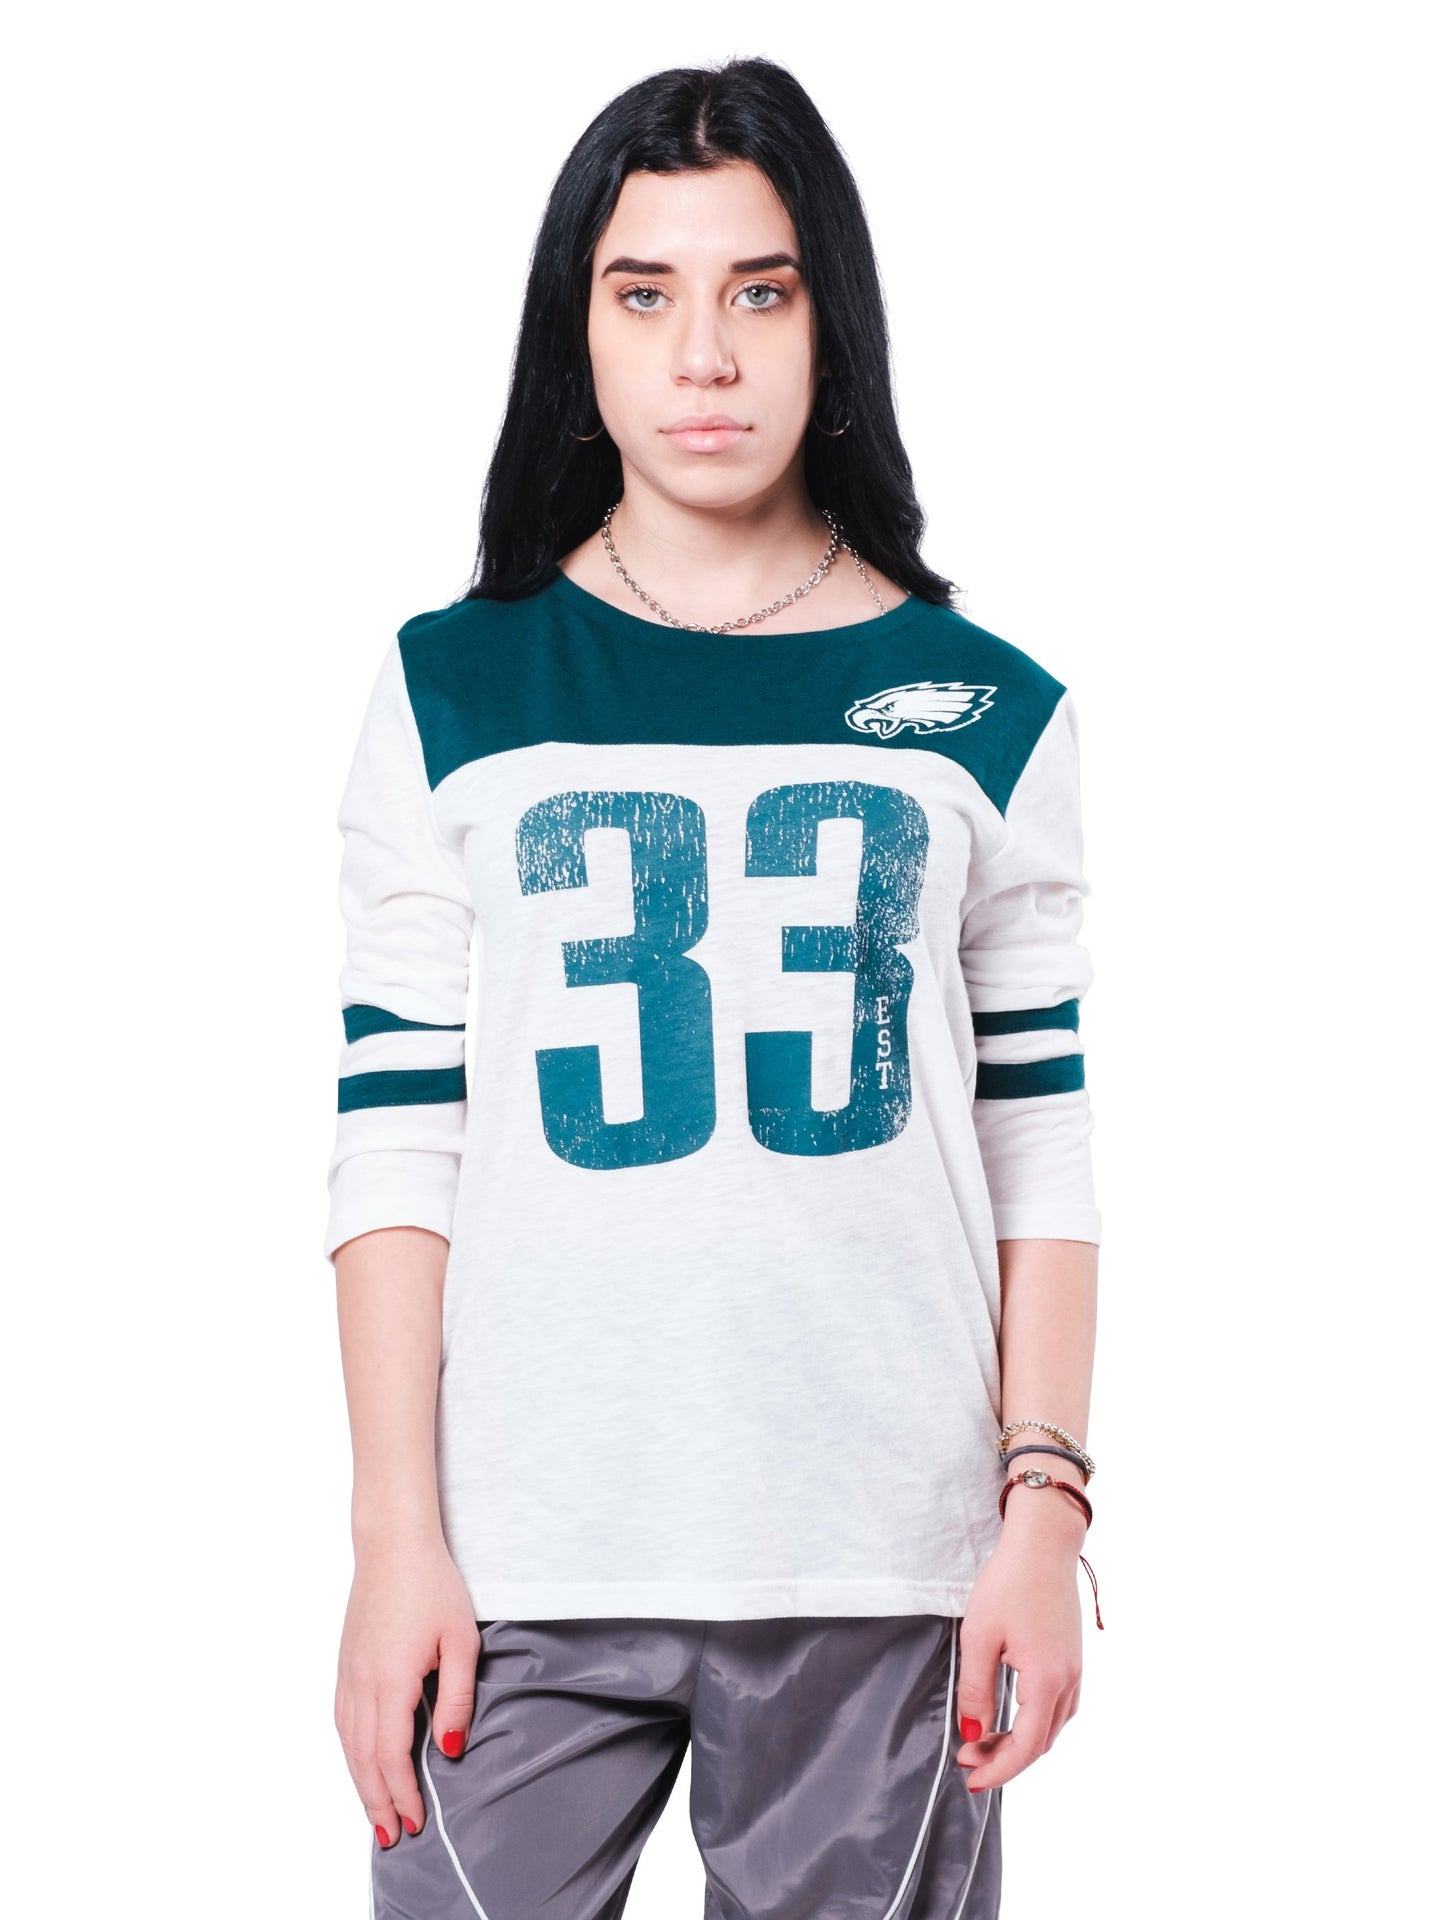 NFL Philadelphia Eagles Women's Vintage 3/4 Long Sleeve Tee|Philadelphia Eagles